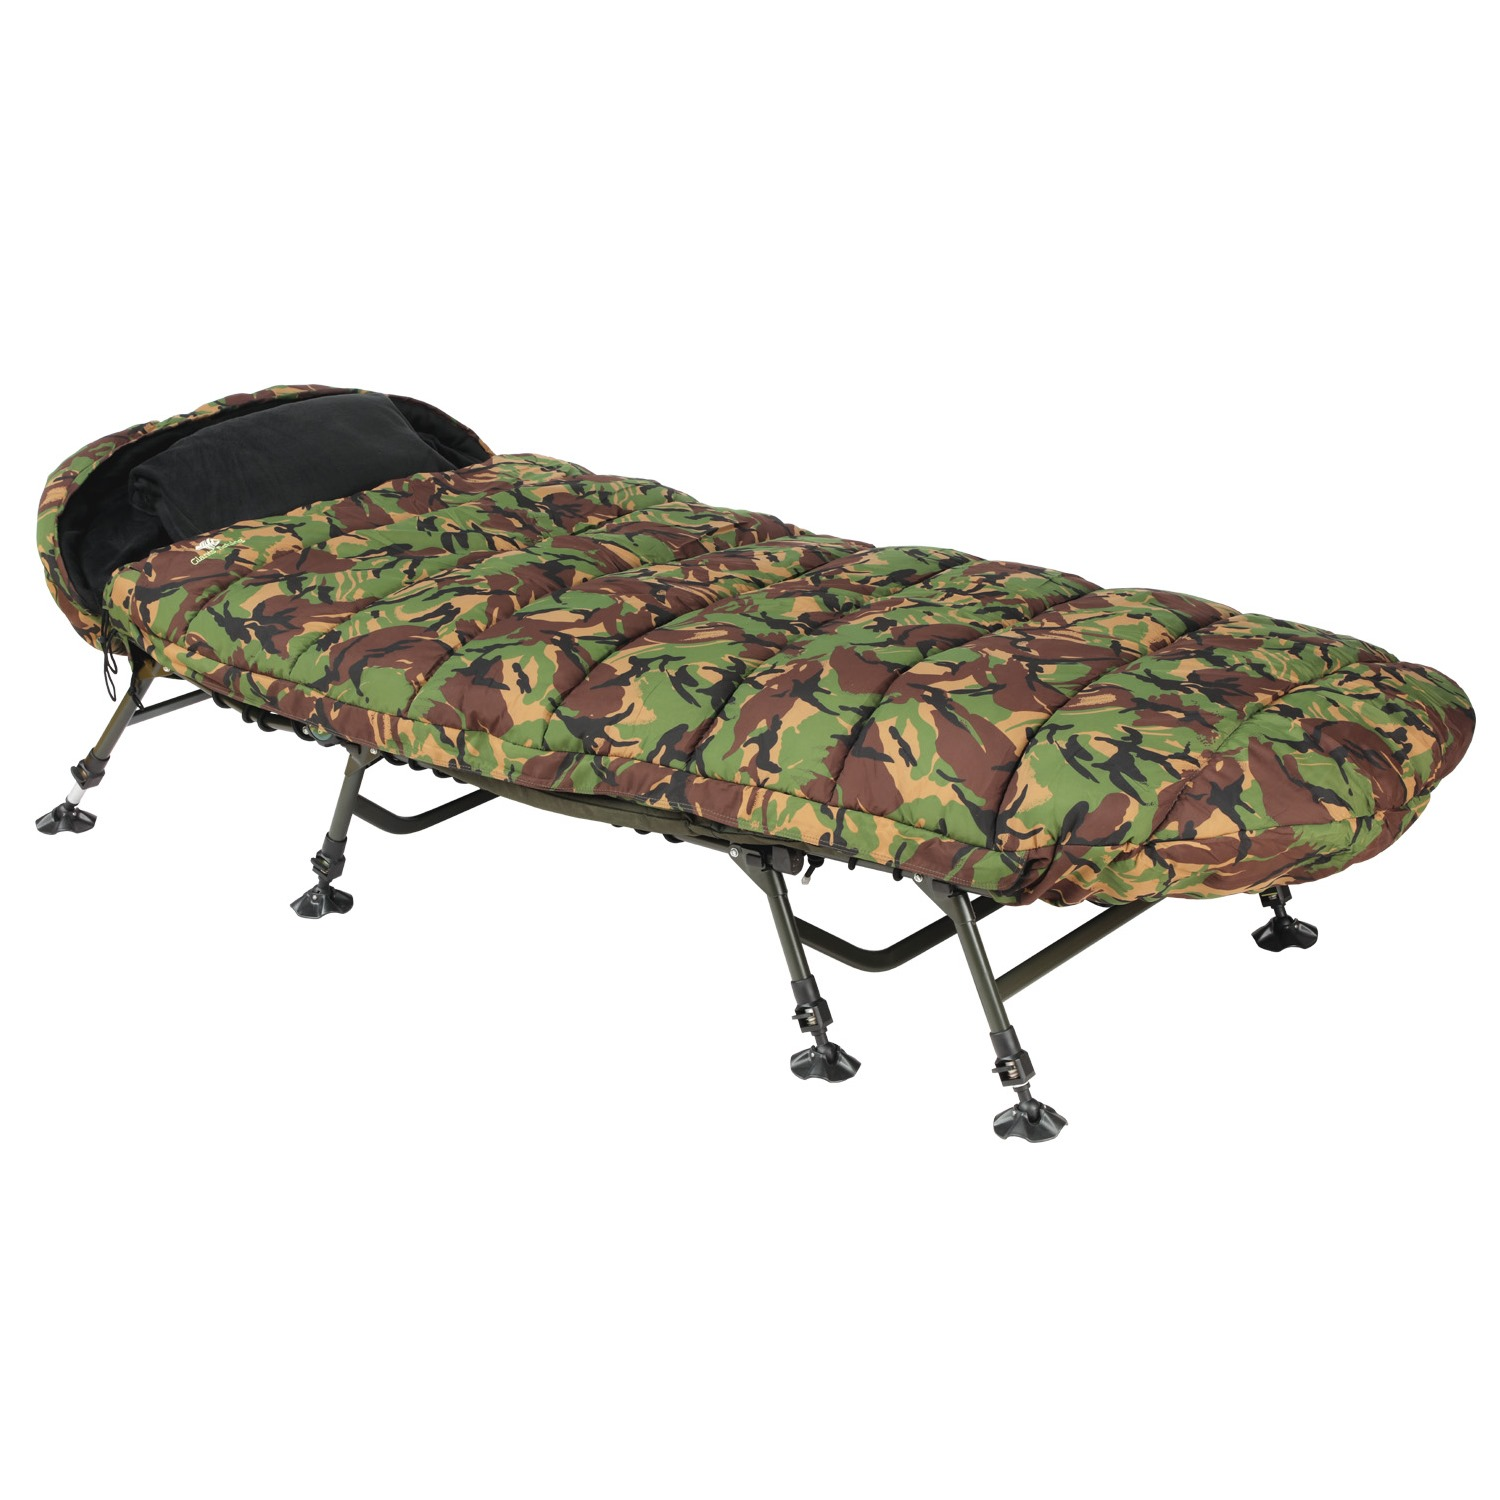 GIANTS FISHING - Spací pytel 5 Season Ext Camo Sleeping Bag